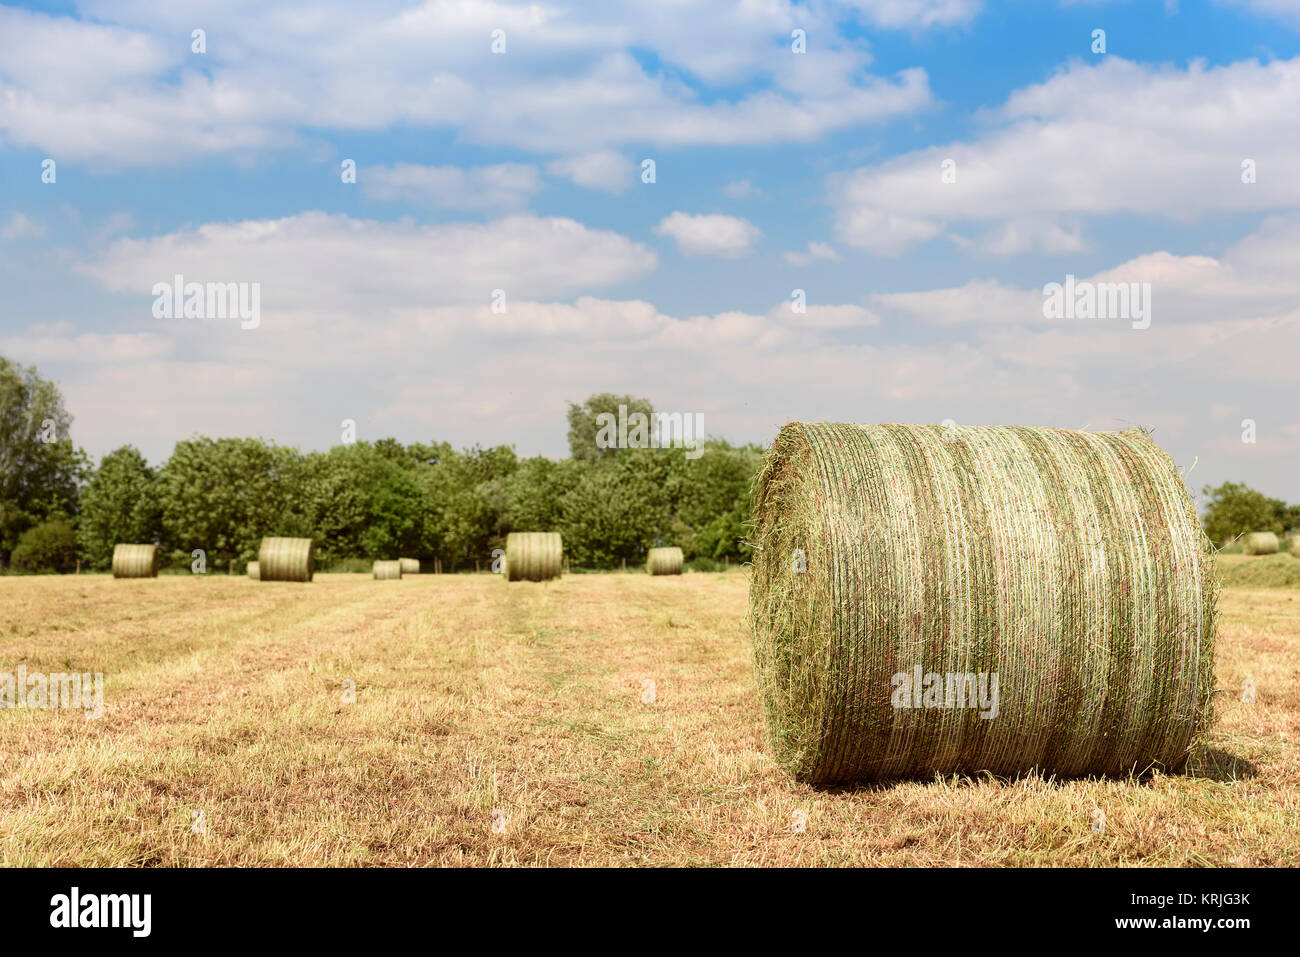 Bales of hay in field - Stock Image